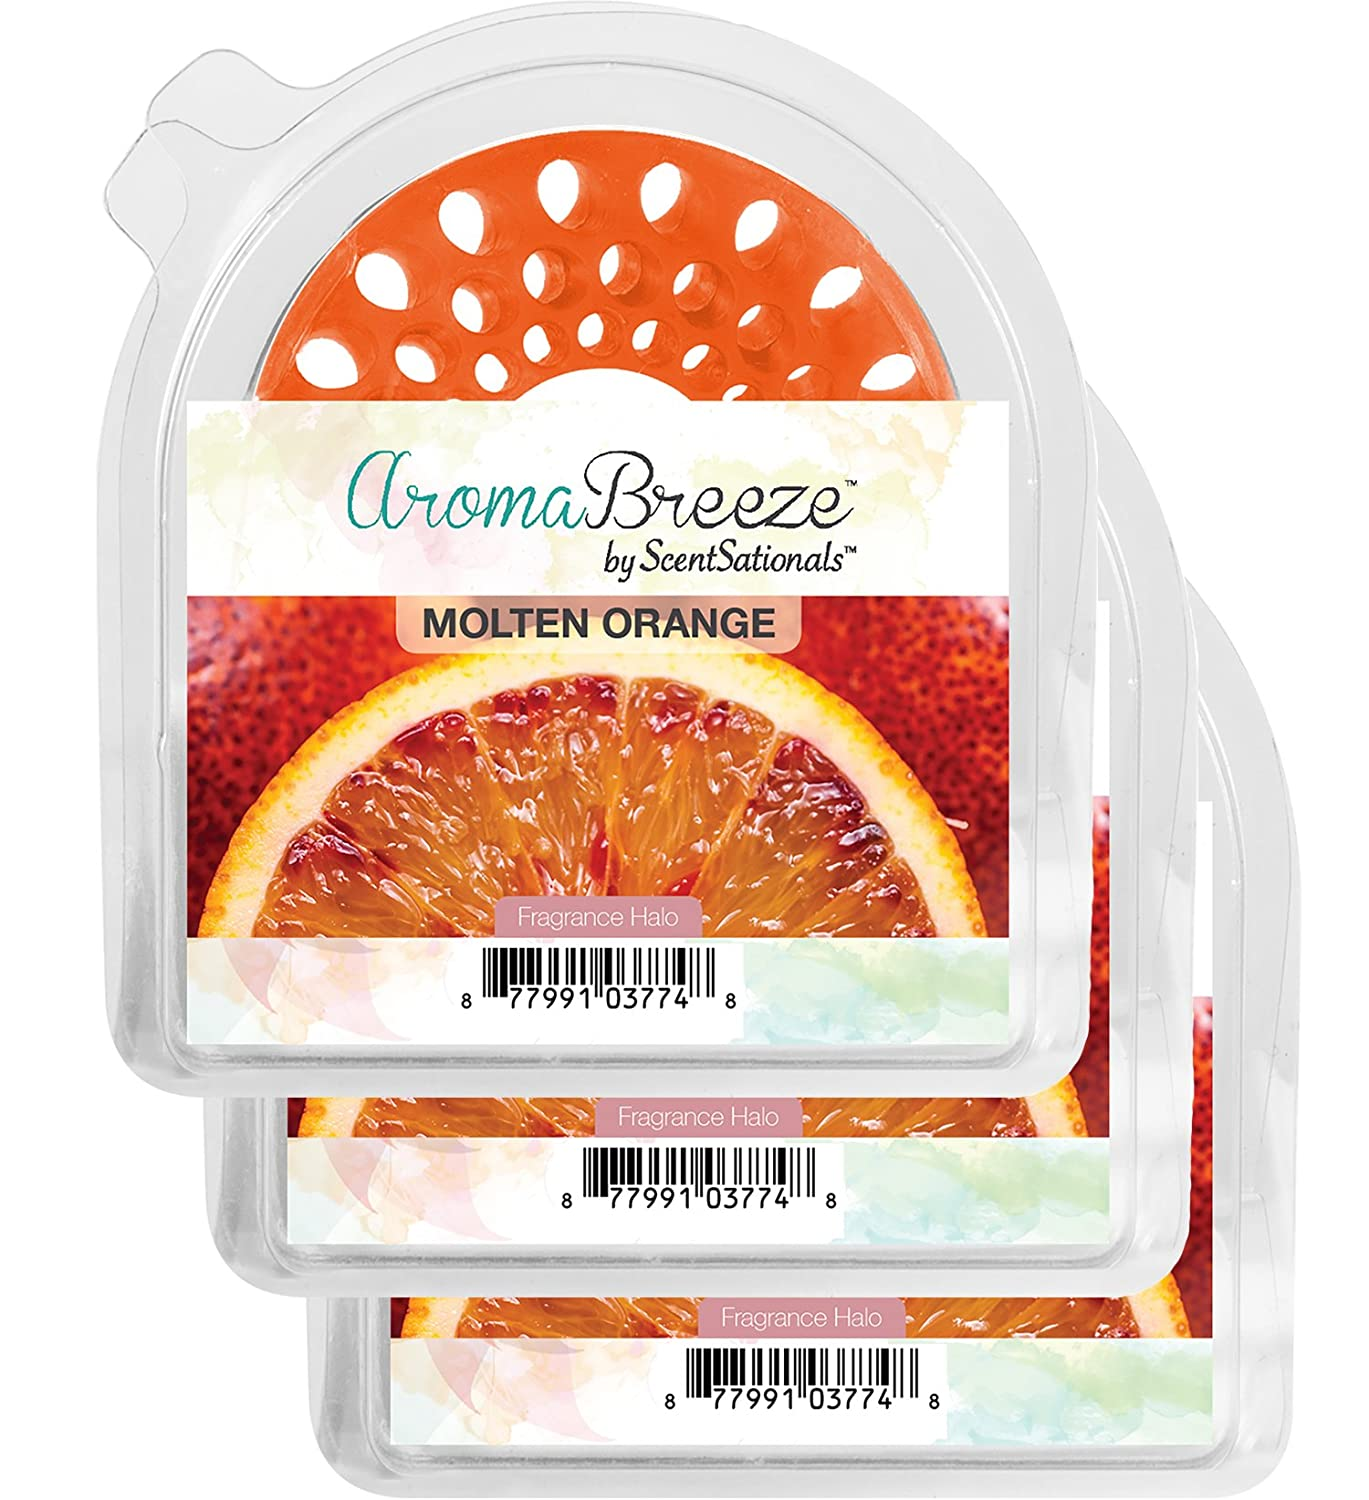 ScentSationals AromaBreeze Fragrance Halos (Molten Orange)